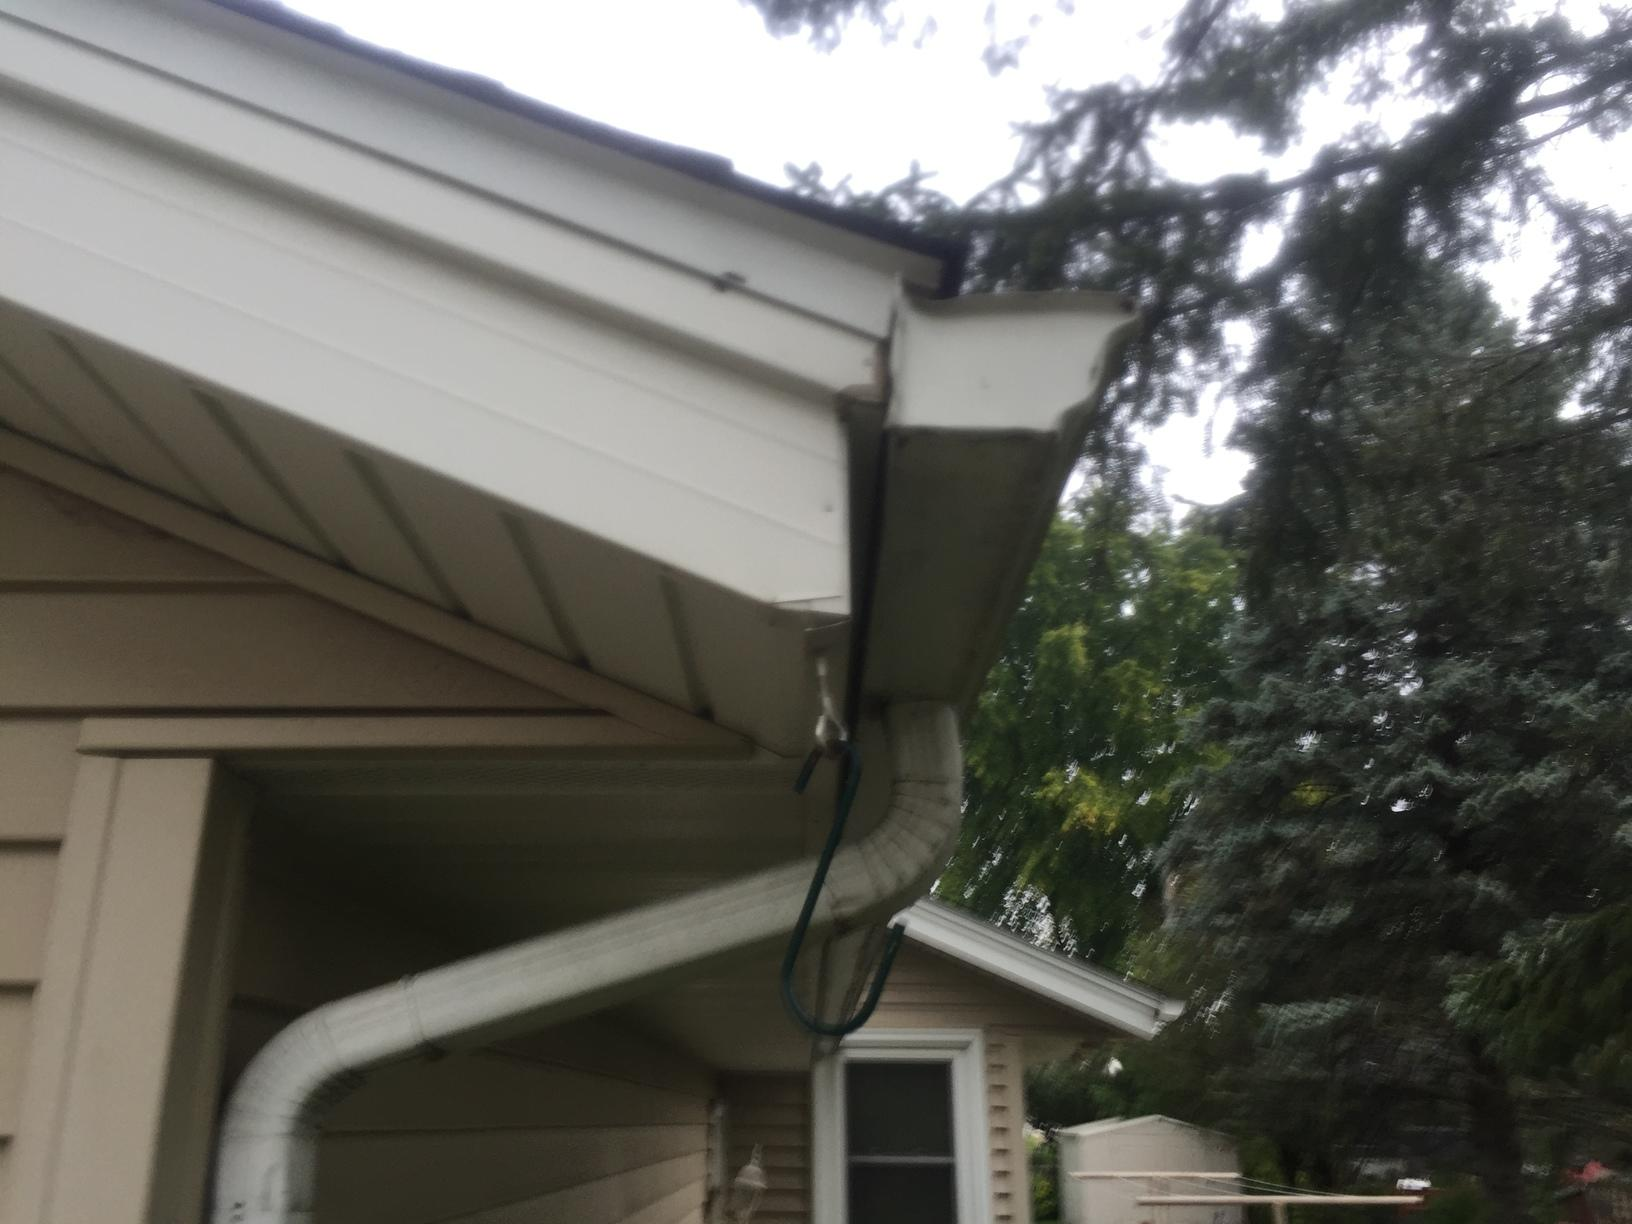 LeafGuard Is Worry Free & Looks Great On This Sun Prairie Home! - Before Photo